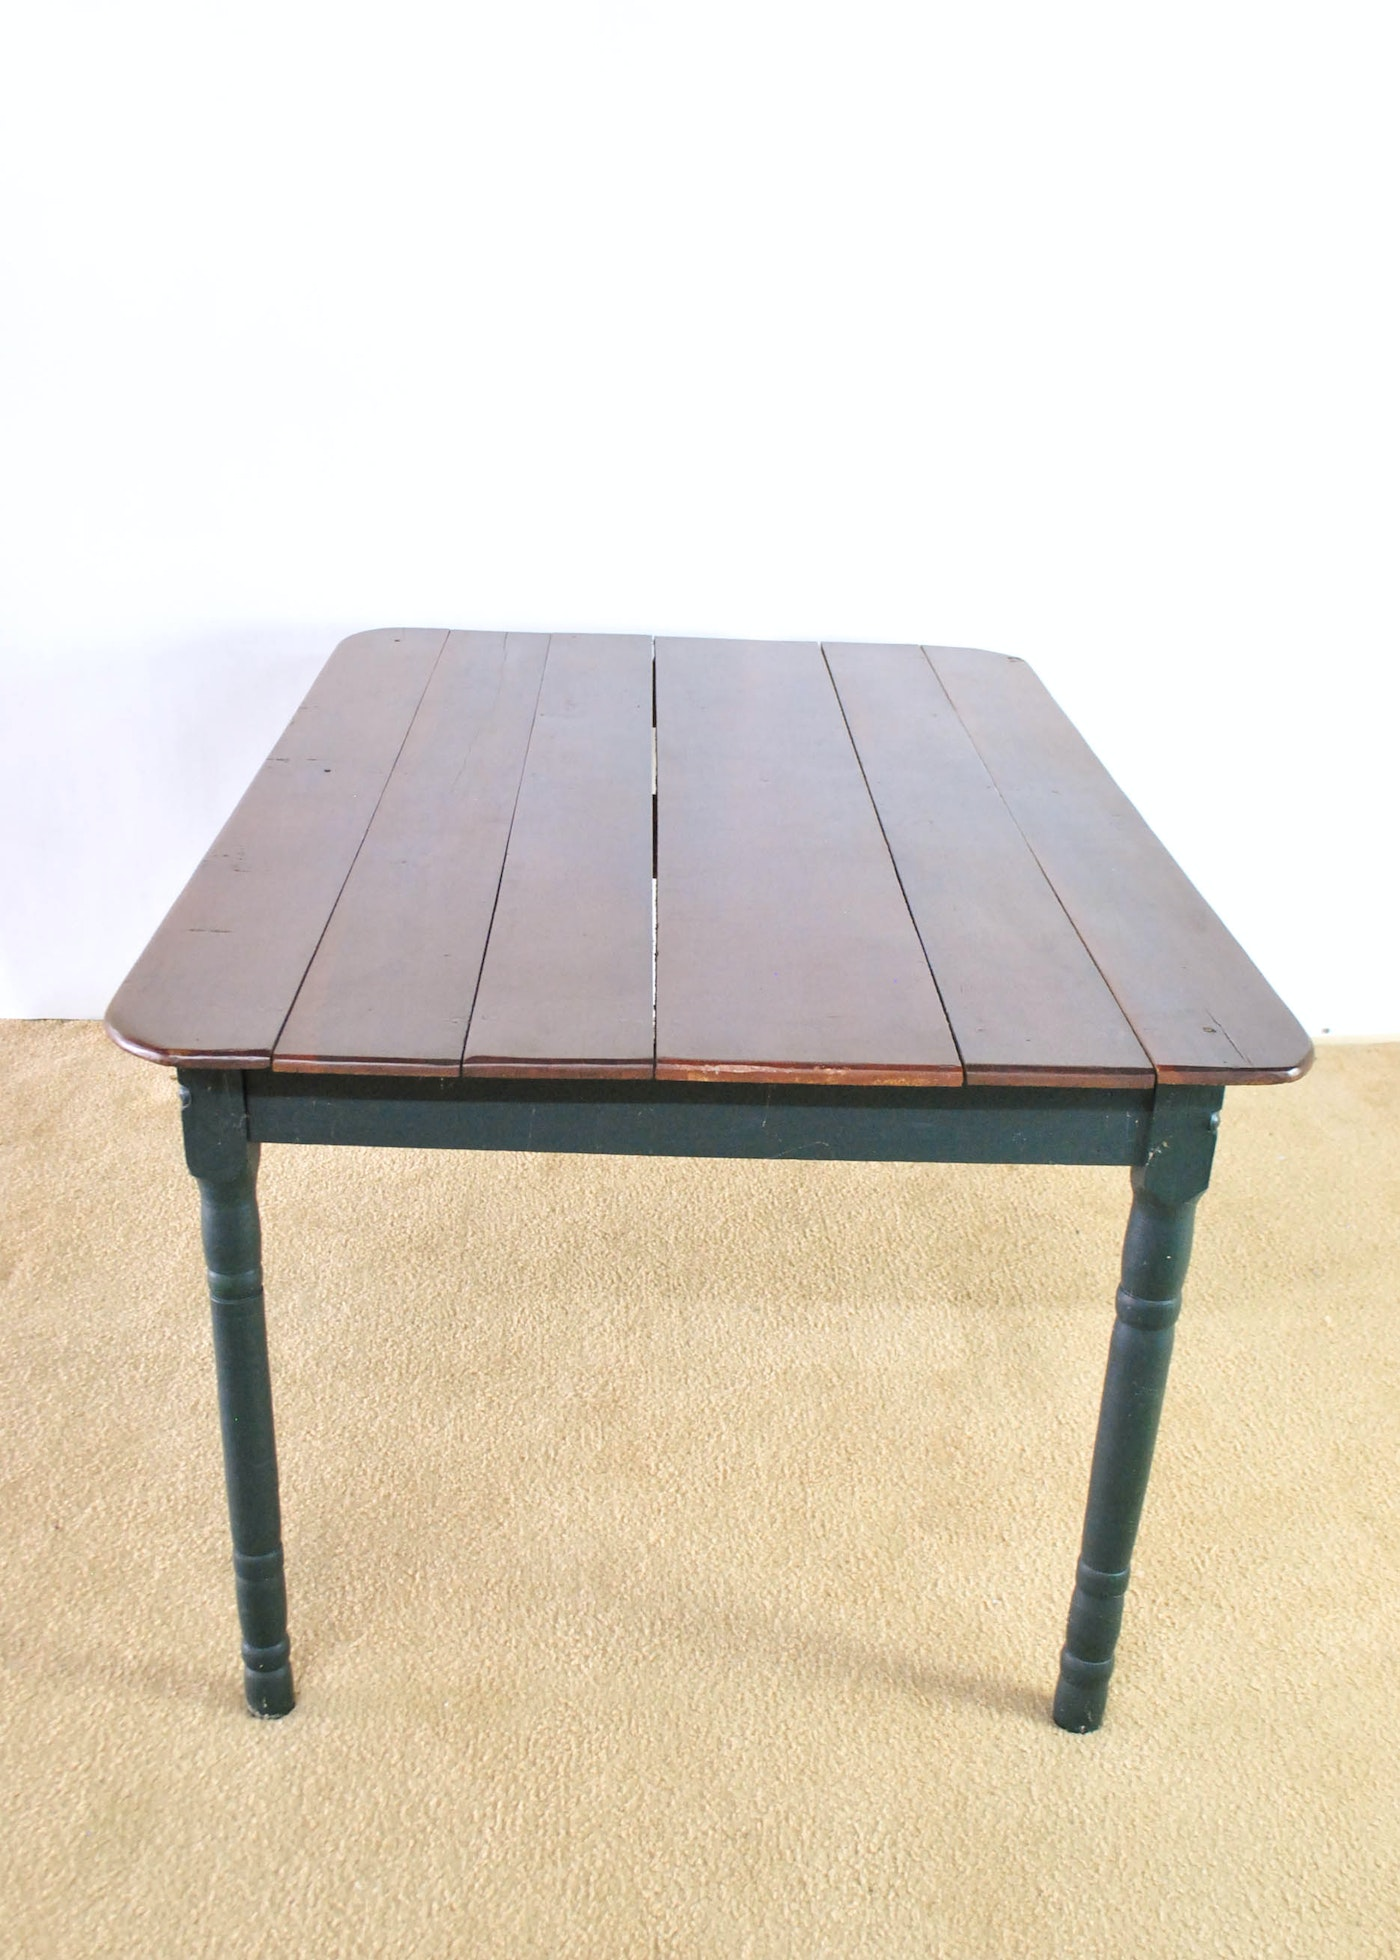 Harvest table ebth for Epl table 99 00